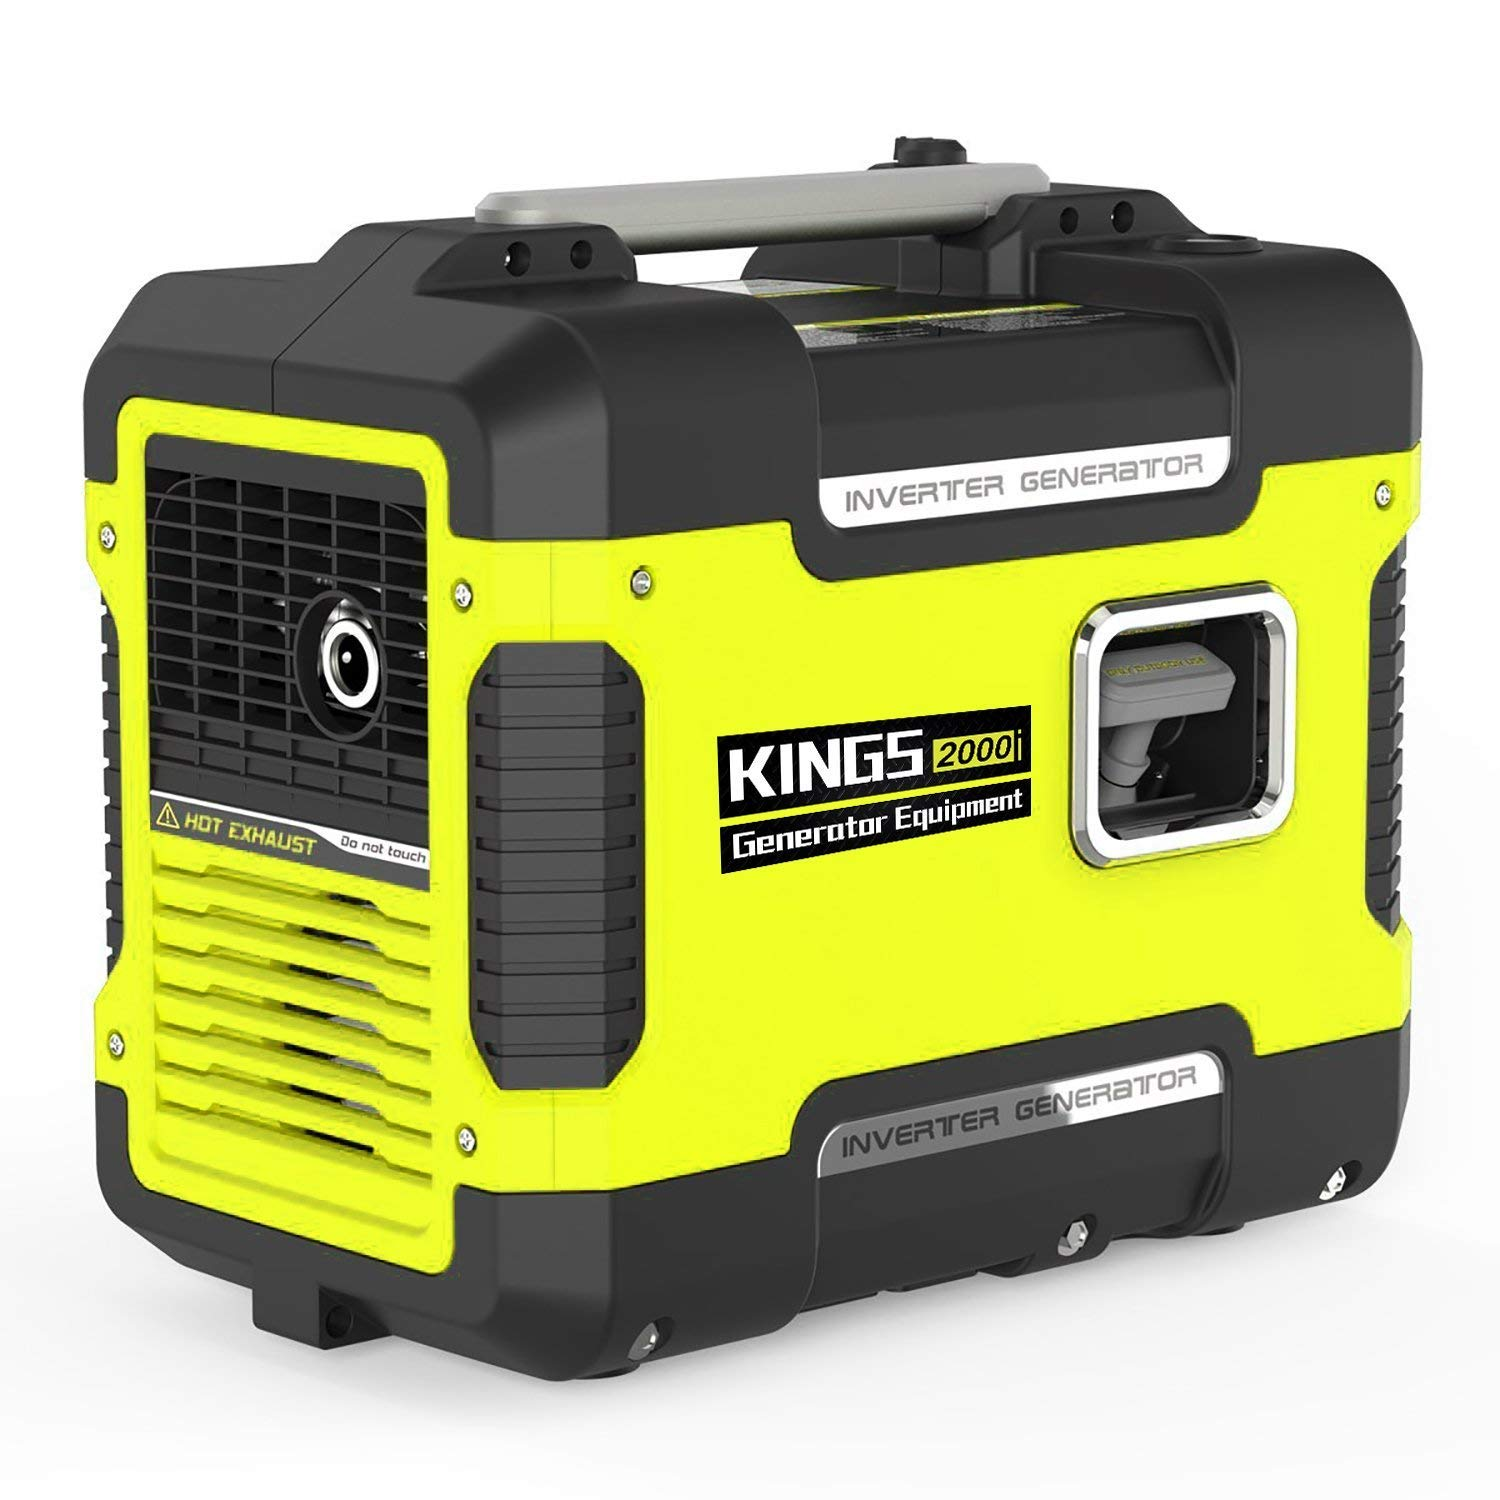 Kings Inverter Generator Portable 2000 W,Ultra Quiet